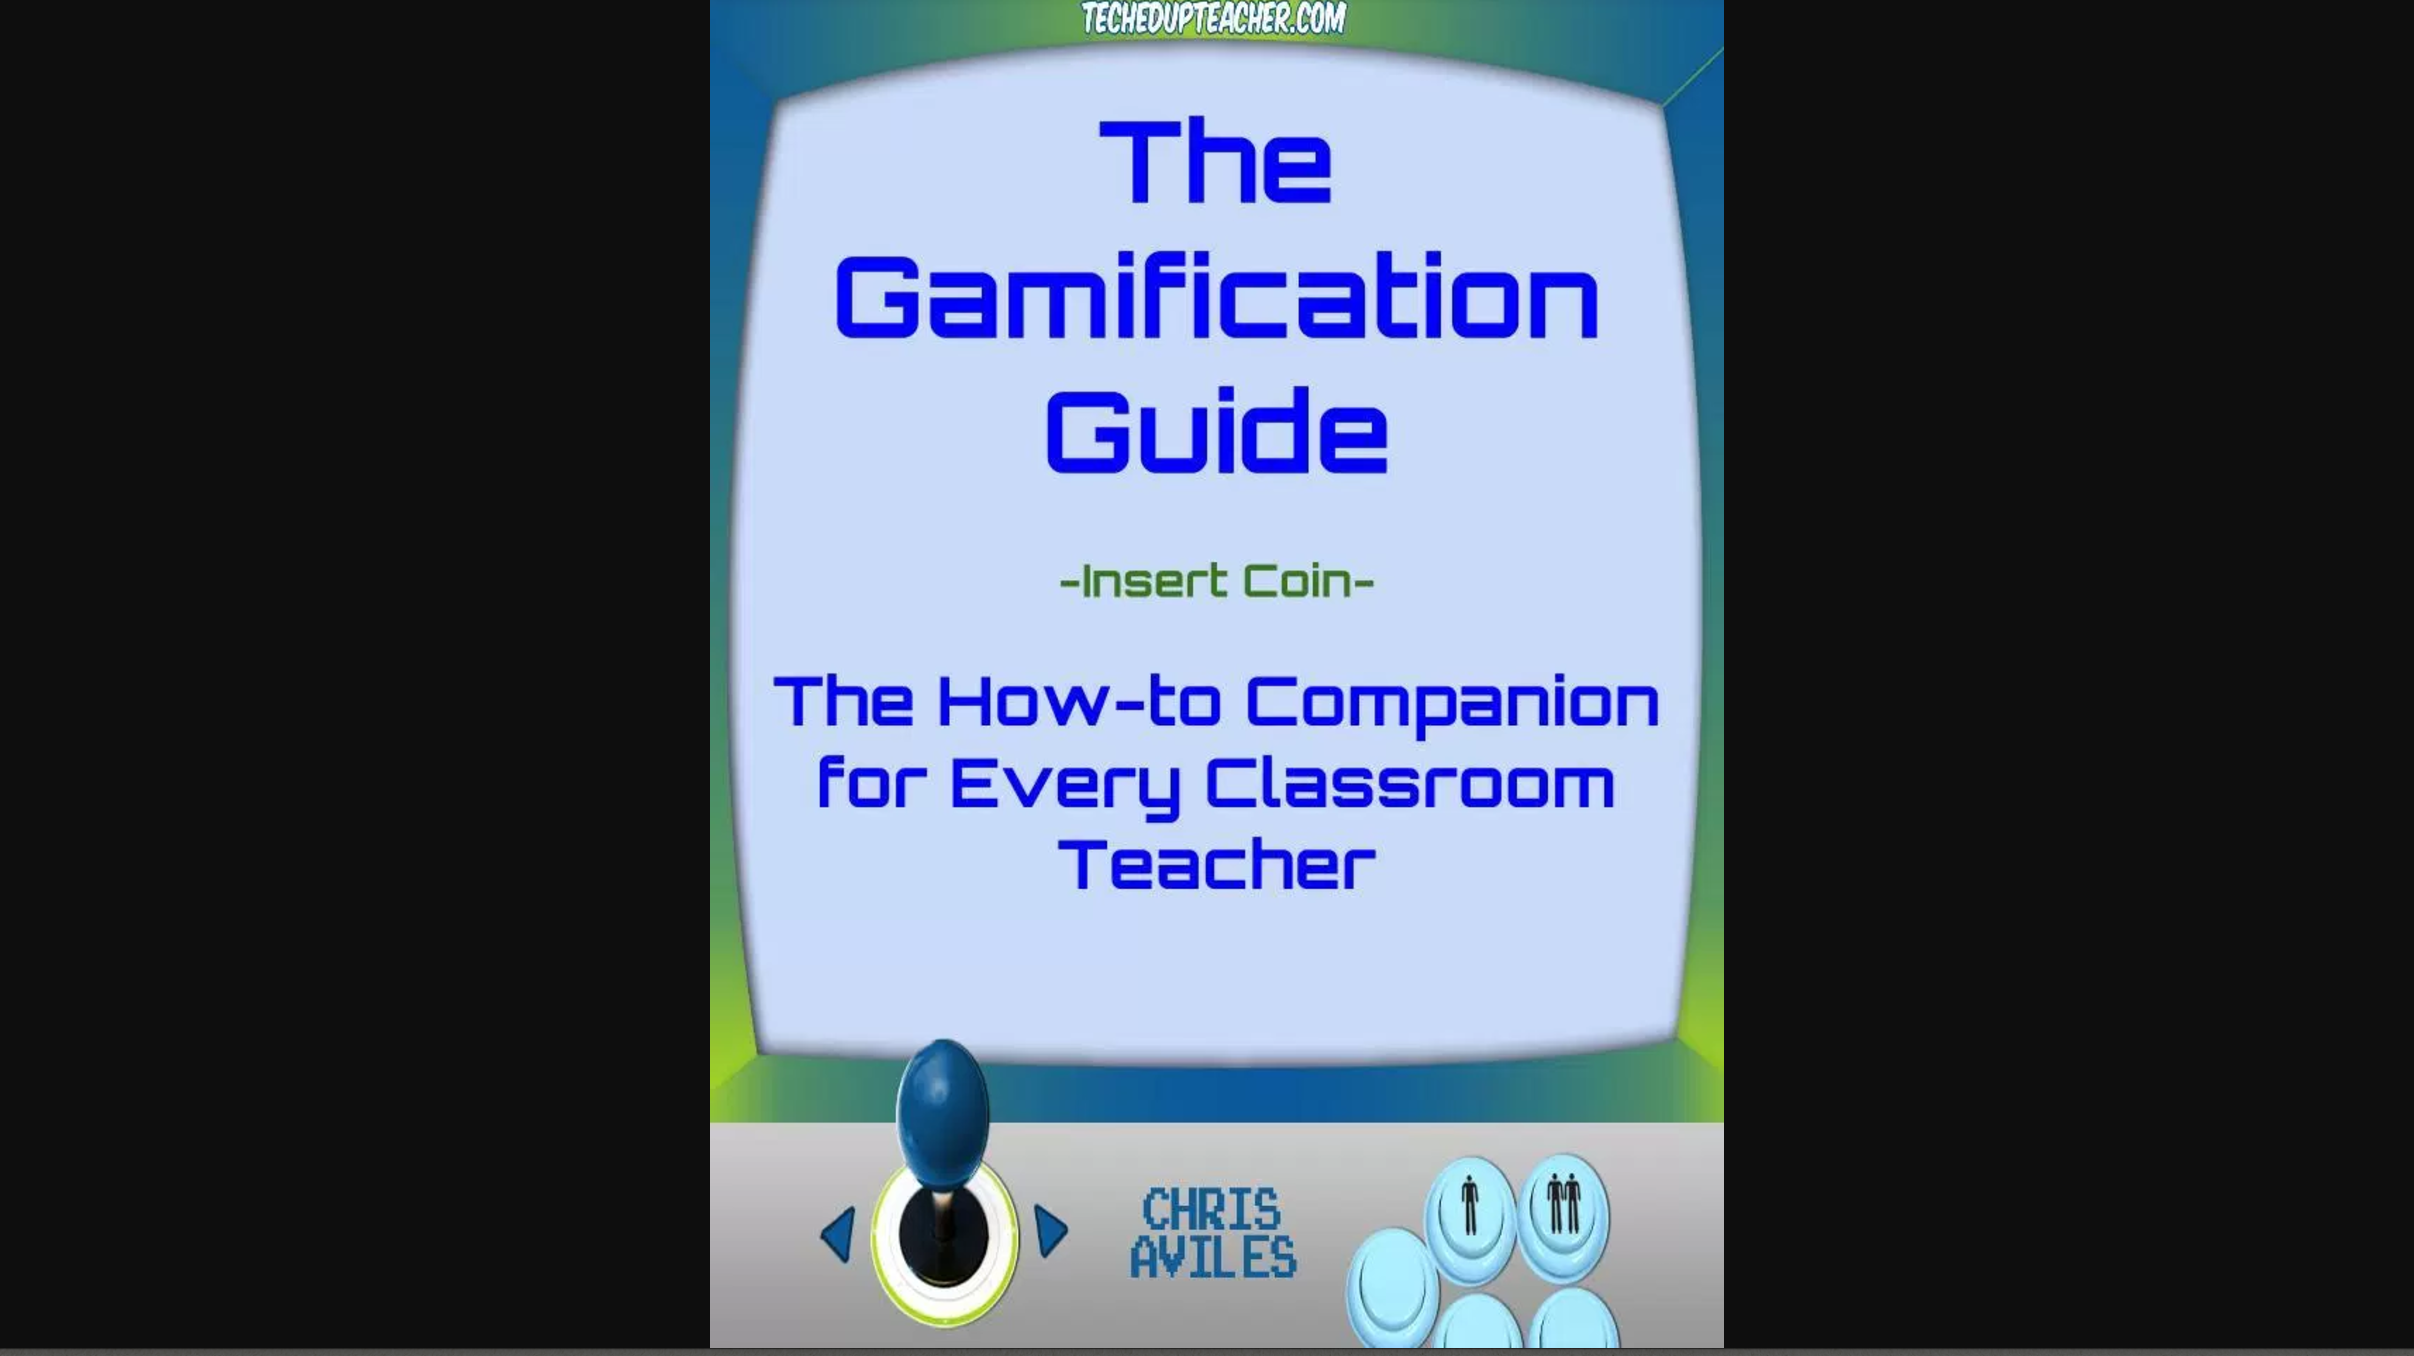 The Gamification Guide